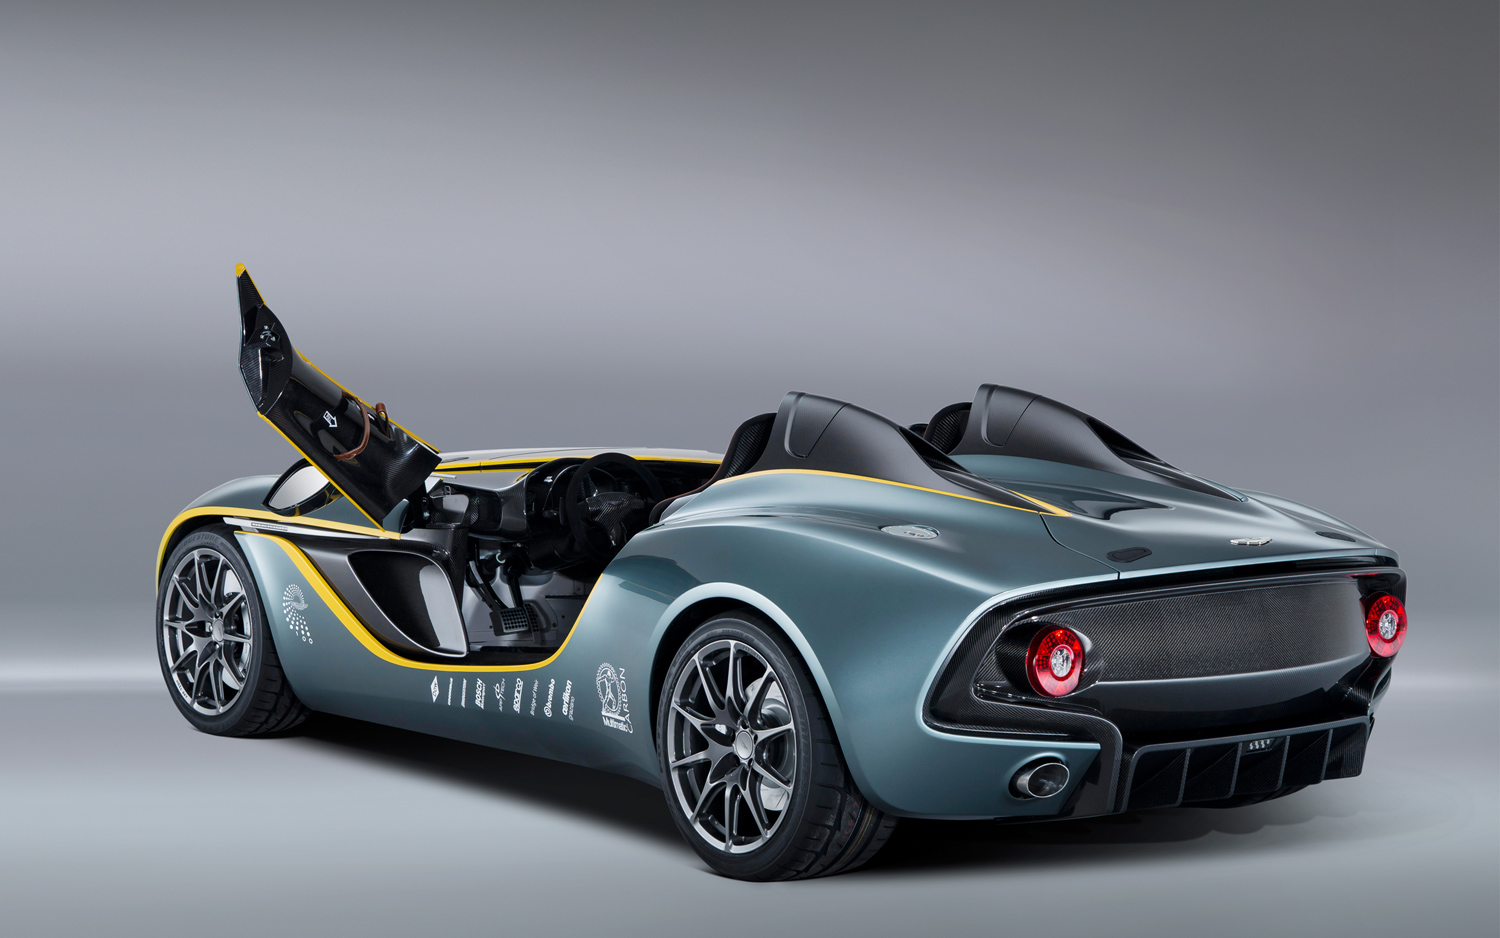 Aston Martin CC100 Speedster Wallpaper Download